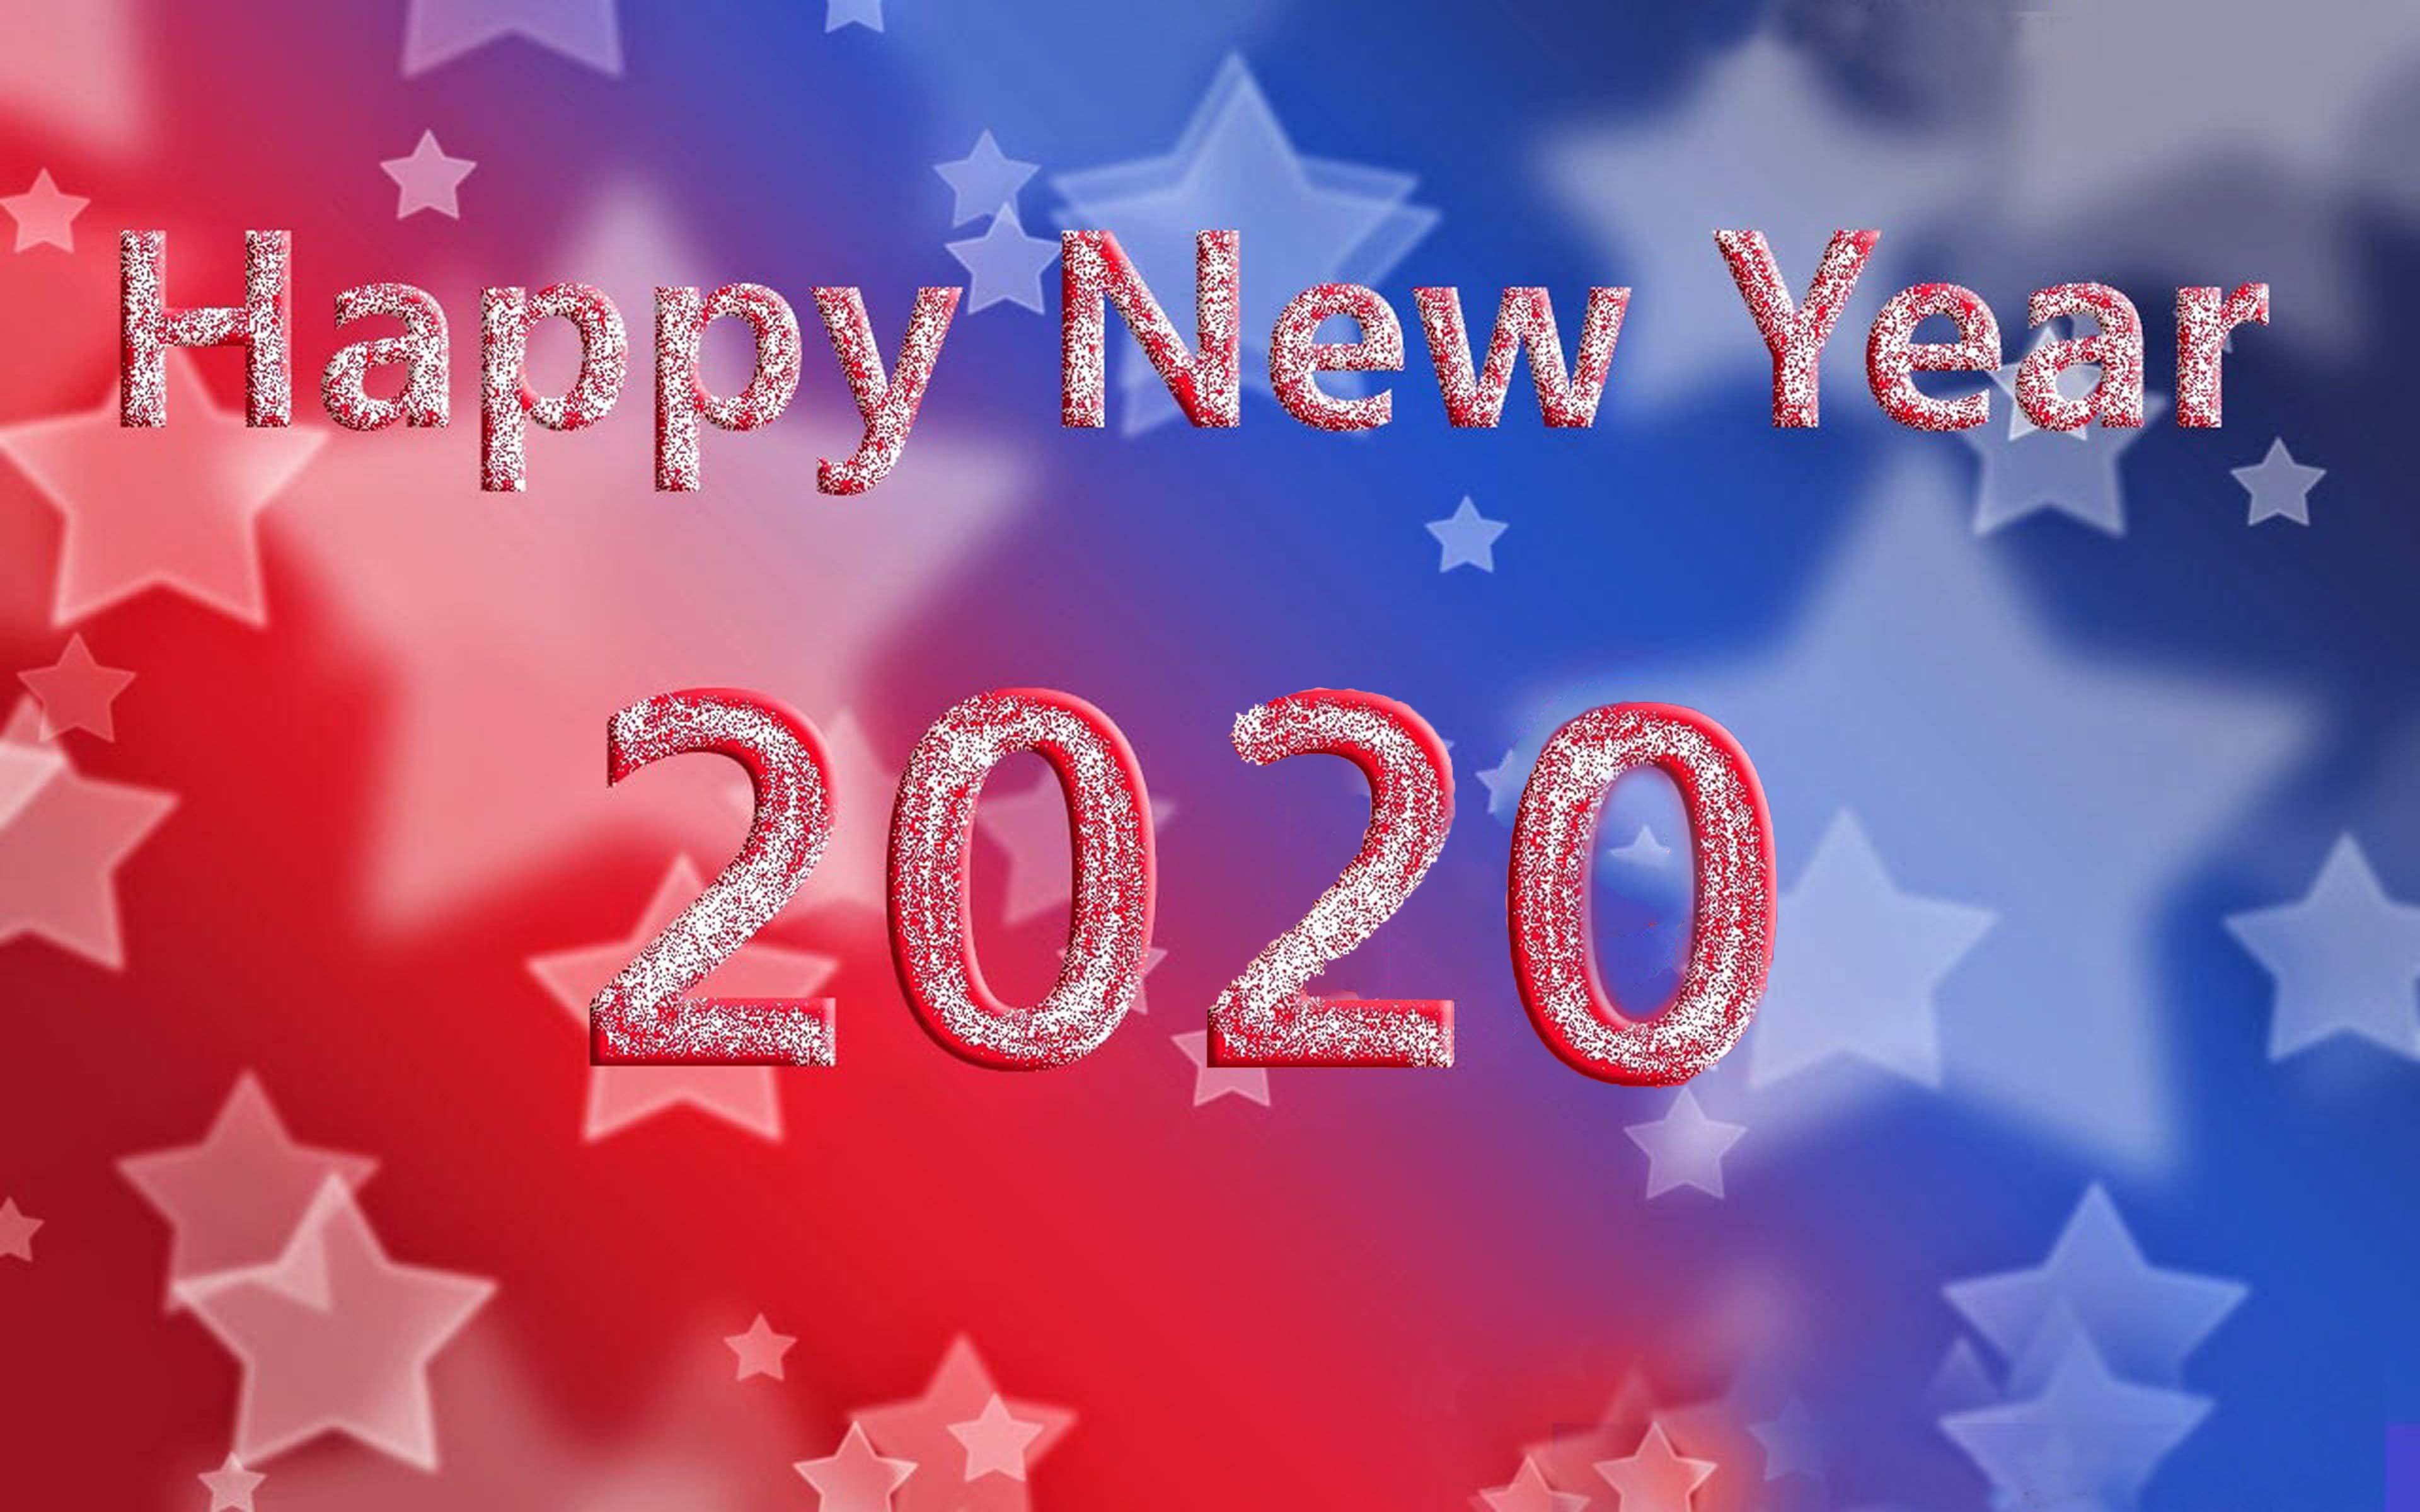 Happy New Year 2020 Greeting Card For Android Mobile Phones Hd 3840x2400